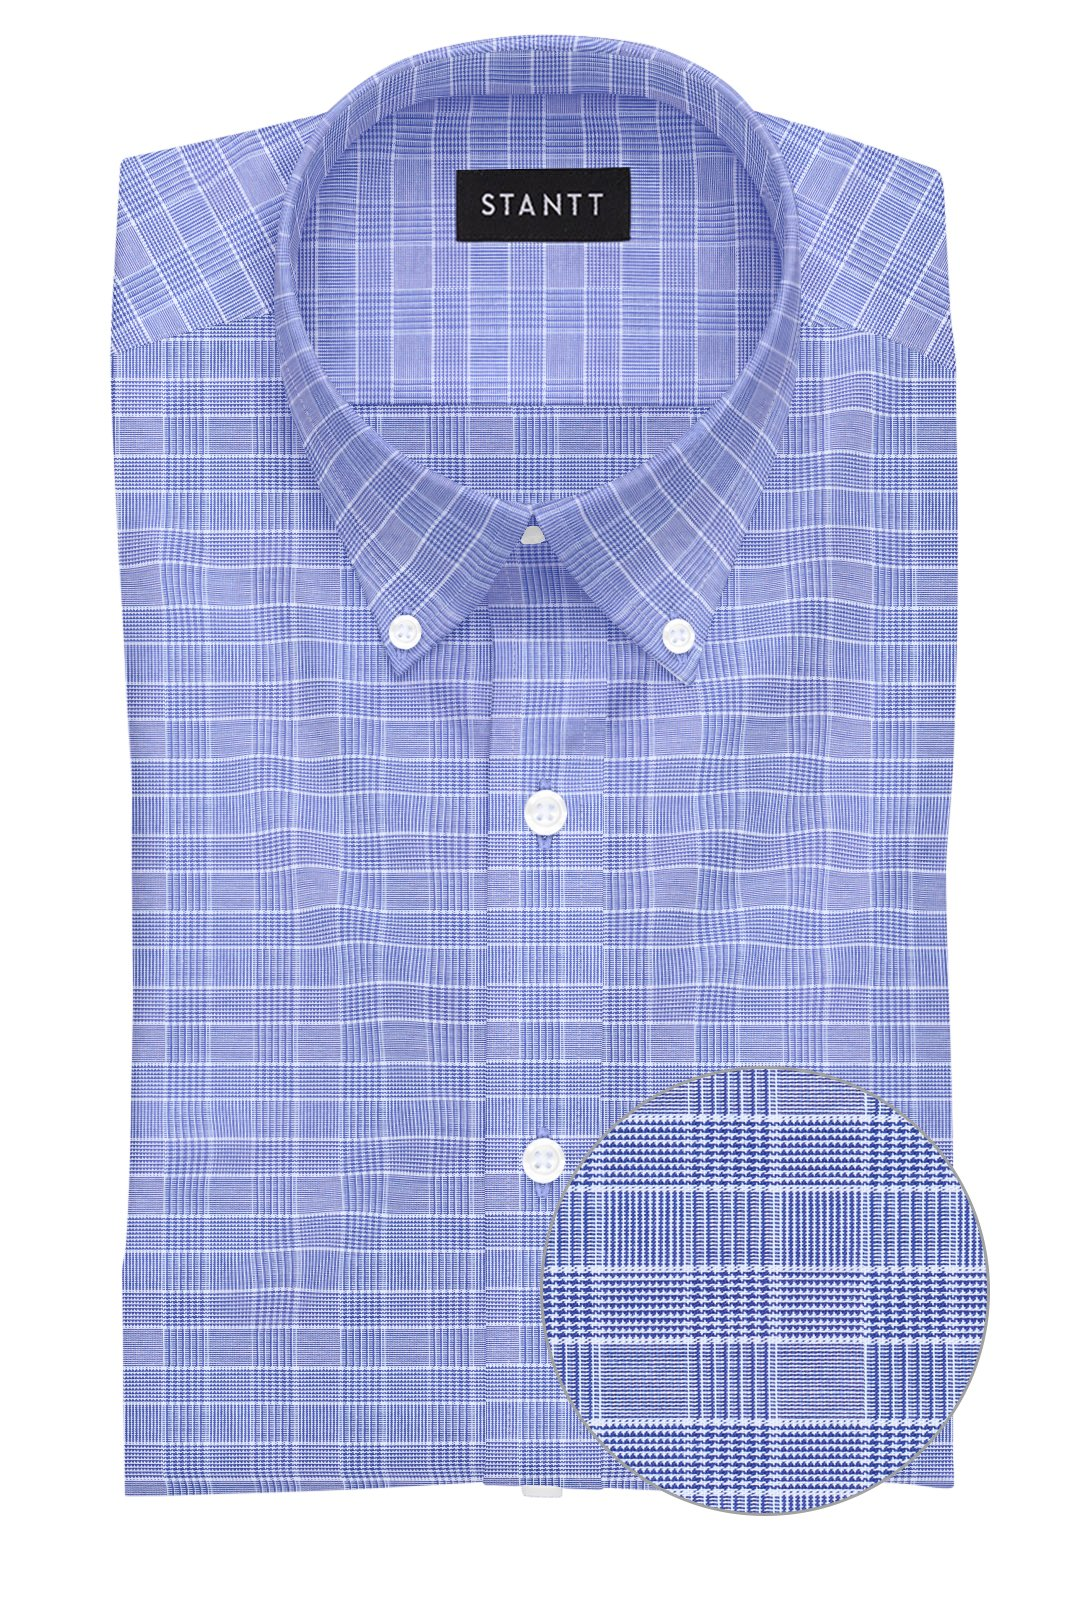 Navy Mini Prince of Wales Check: Button-Down Collar, Barrel Cuff